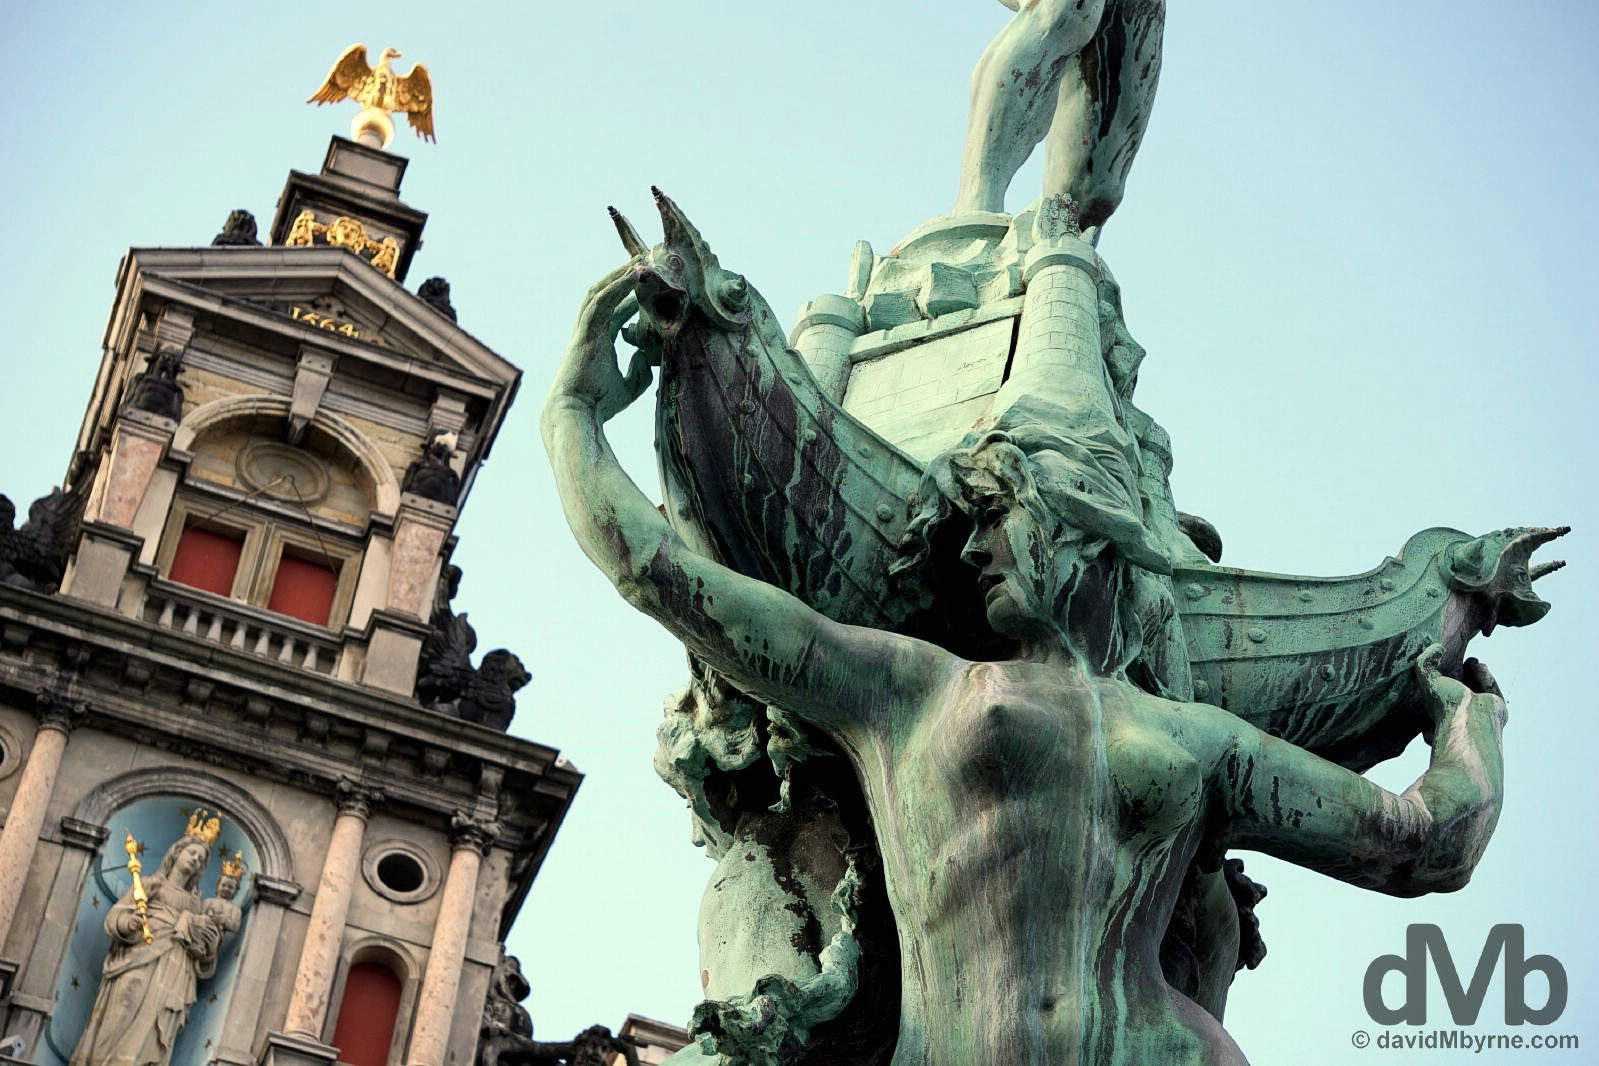 Brabo Fountain statue and the central tower of the Stadhuis in Grote Markt, Antwerp, Belgium. January 17, 2016.